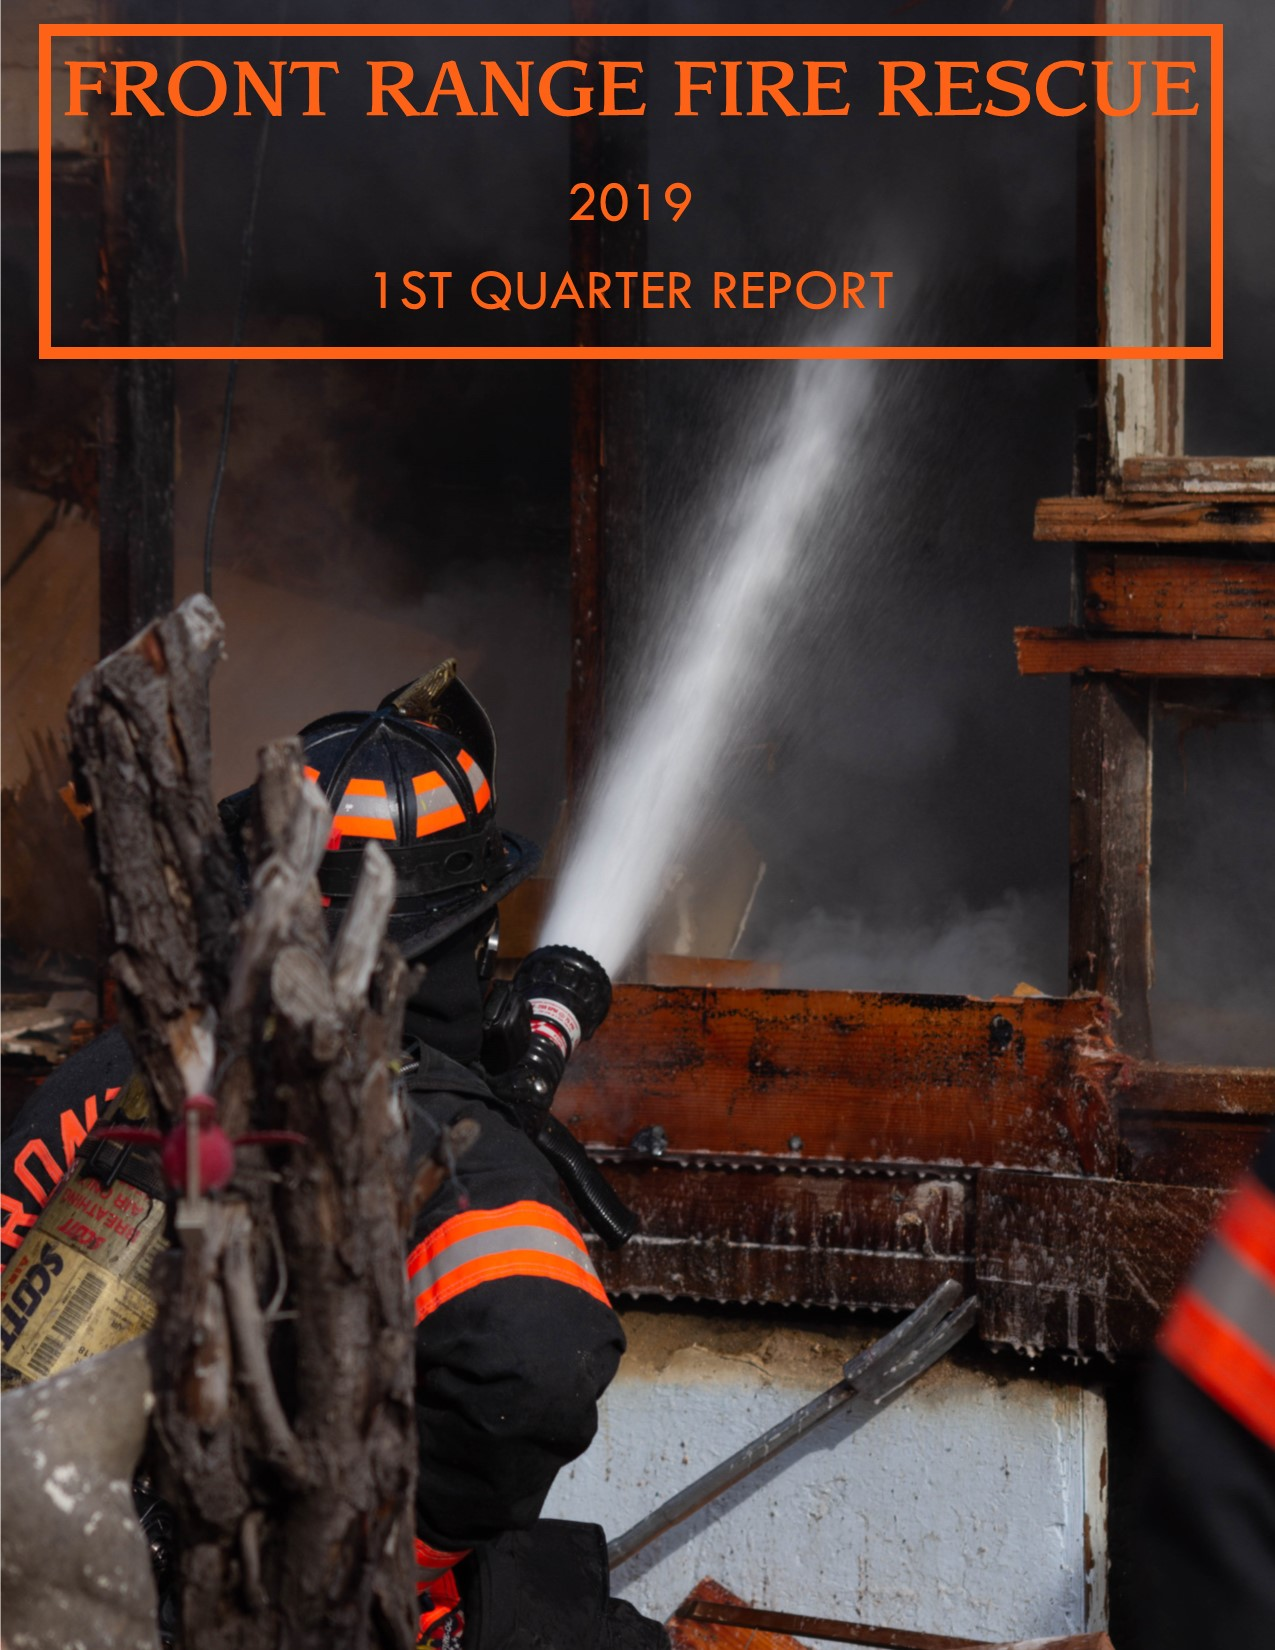 Front Range Fire Rescue 2019 1st Quarter Report